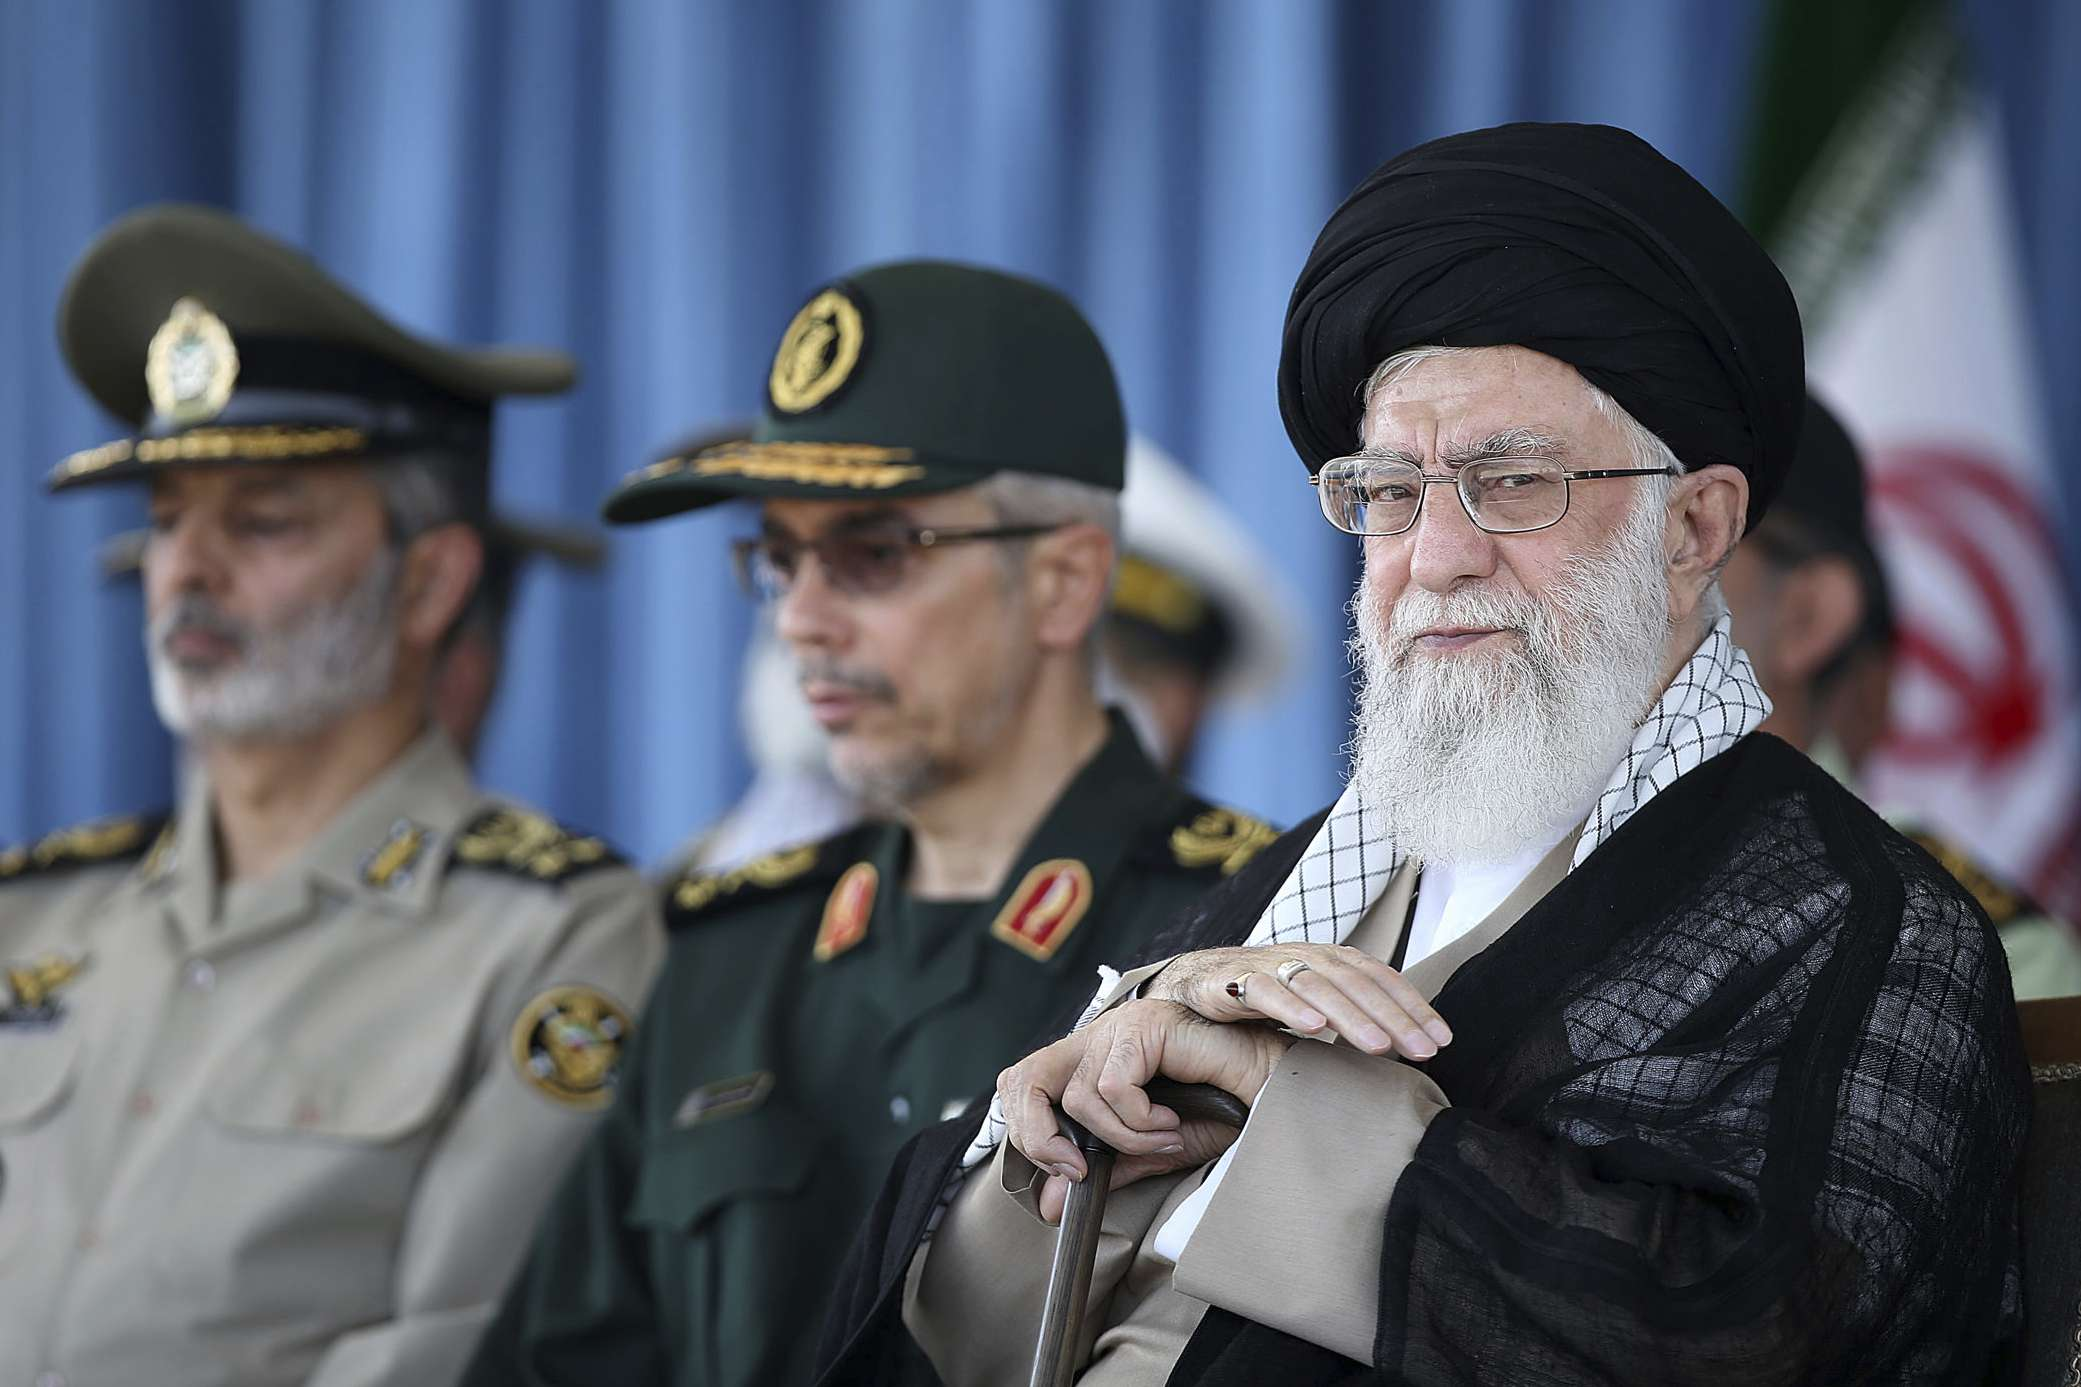 Iranian Supreme Leader Ayatollah Ali Khamenei (R) attends a ceremony at a military academy in Tehran, on June 30. (Office of the Iranian Supreme Leader)